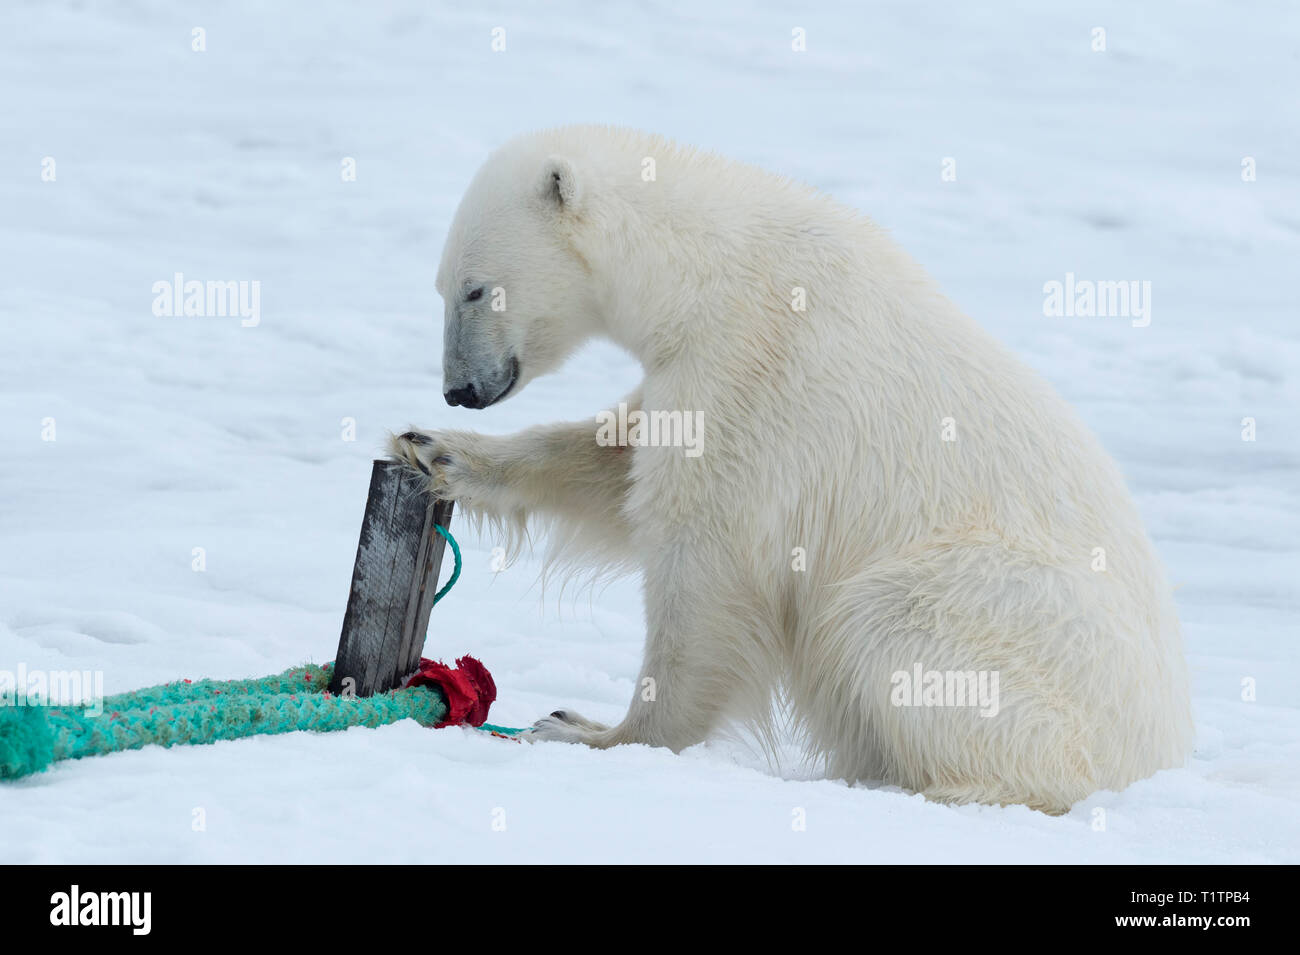 Polar Bear (Ursus maritimus) inspecting rope and pole that holds expedition ship, Svalbard Archipelago, Norway - Stock Image